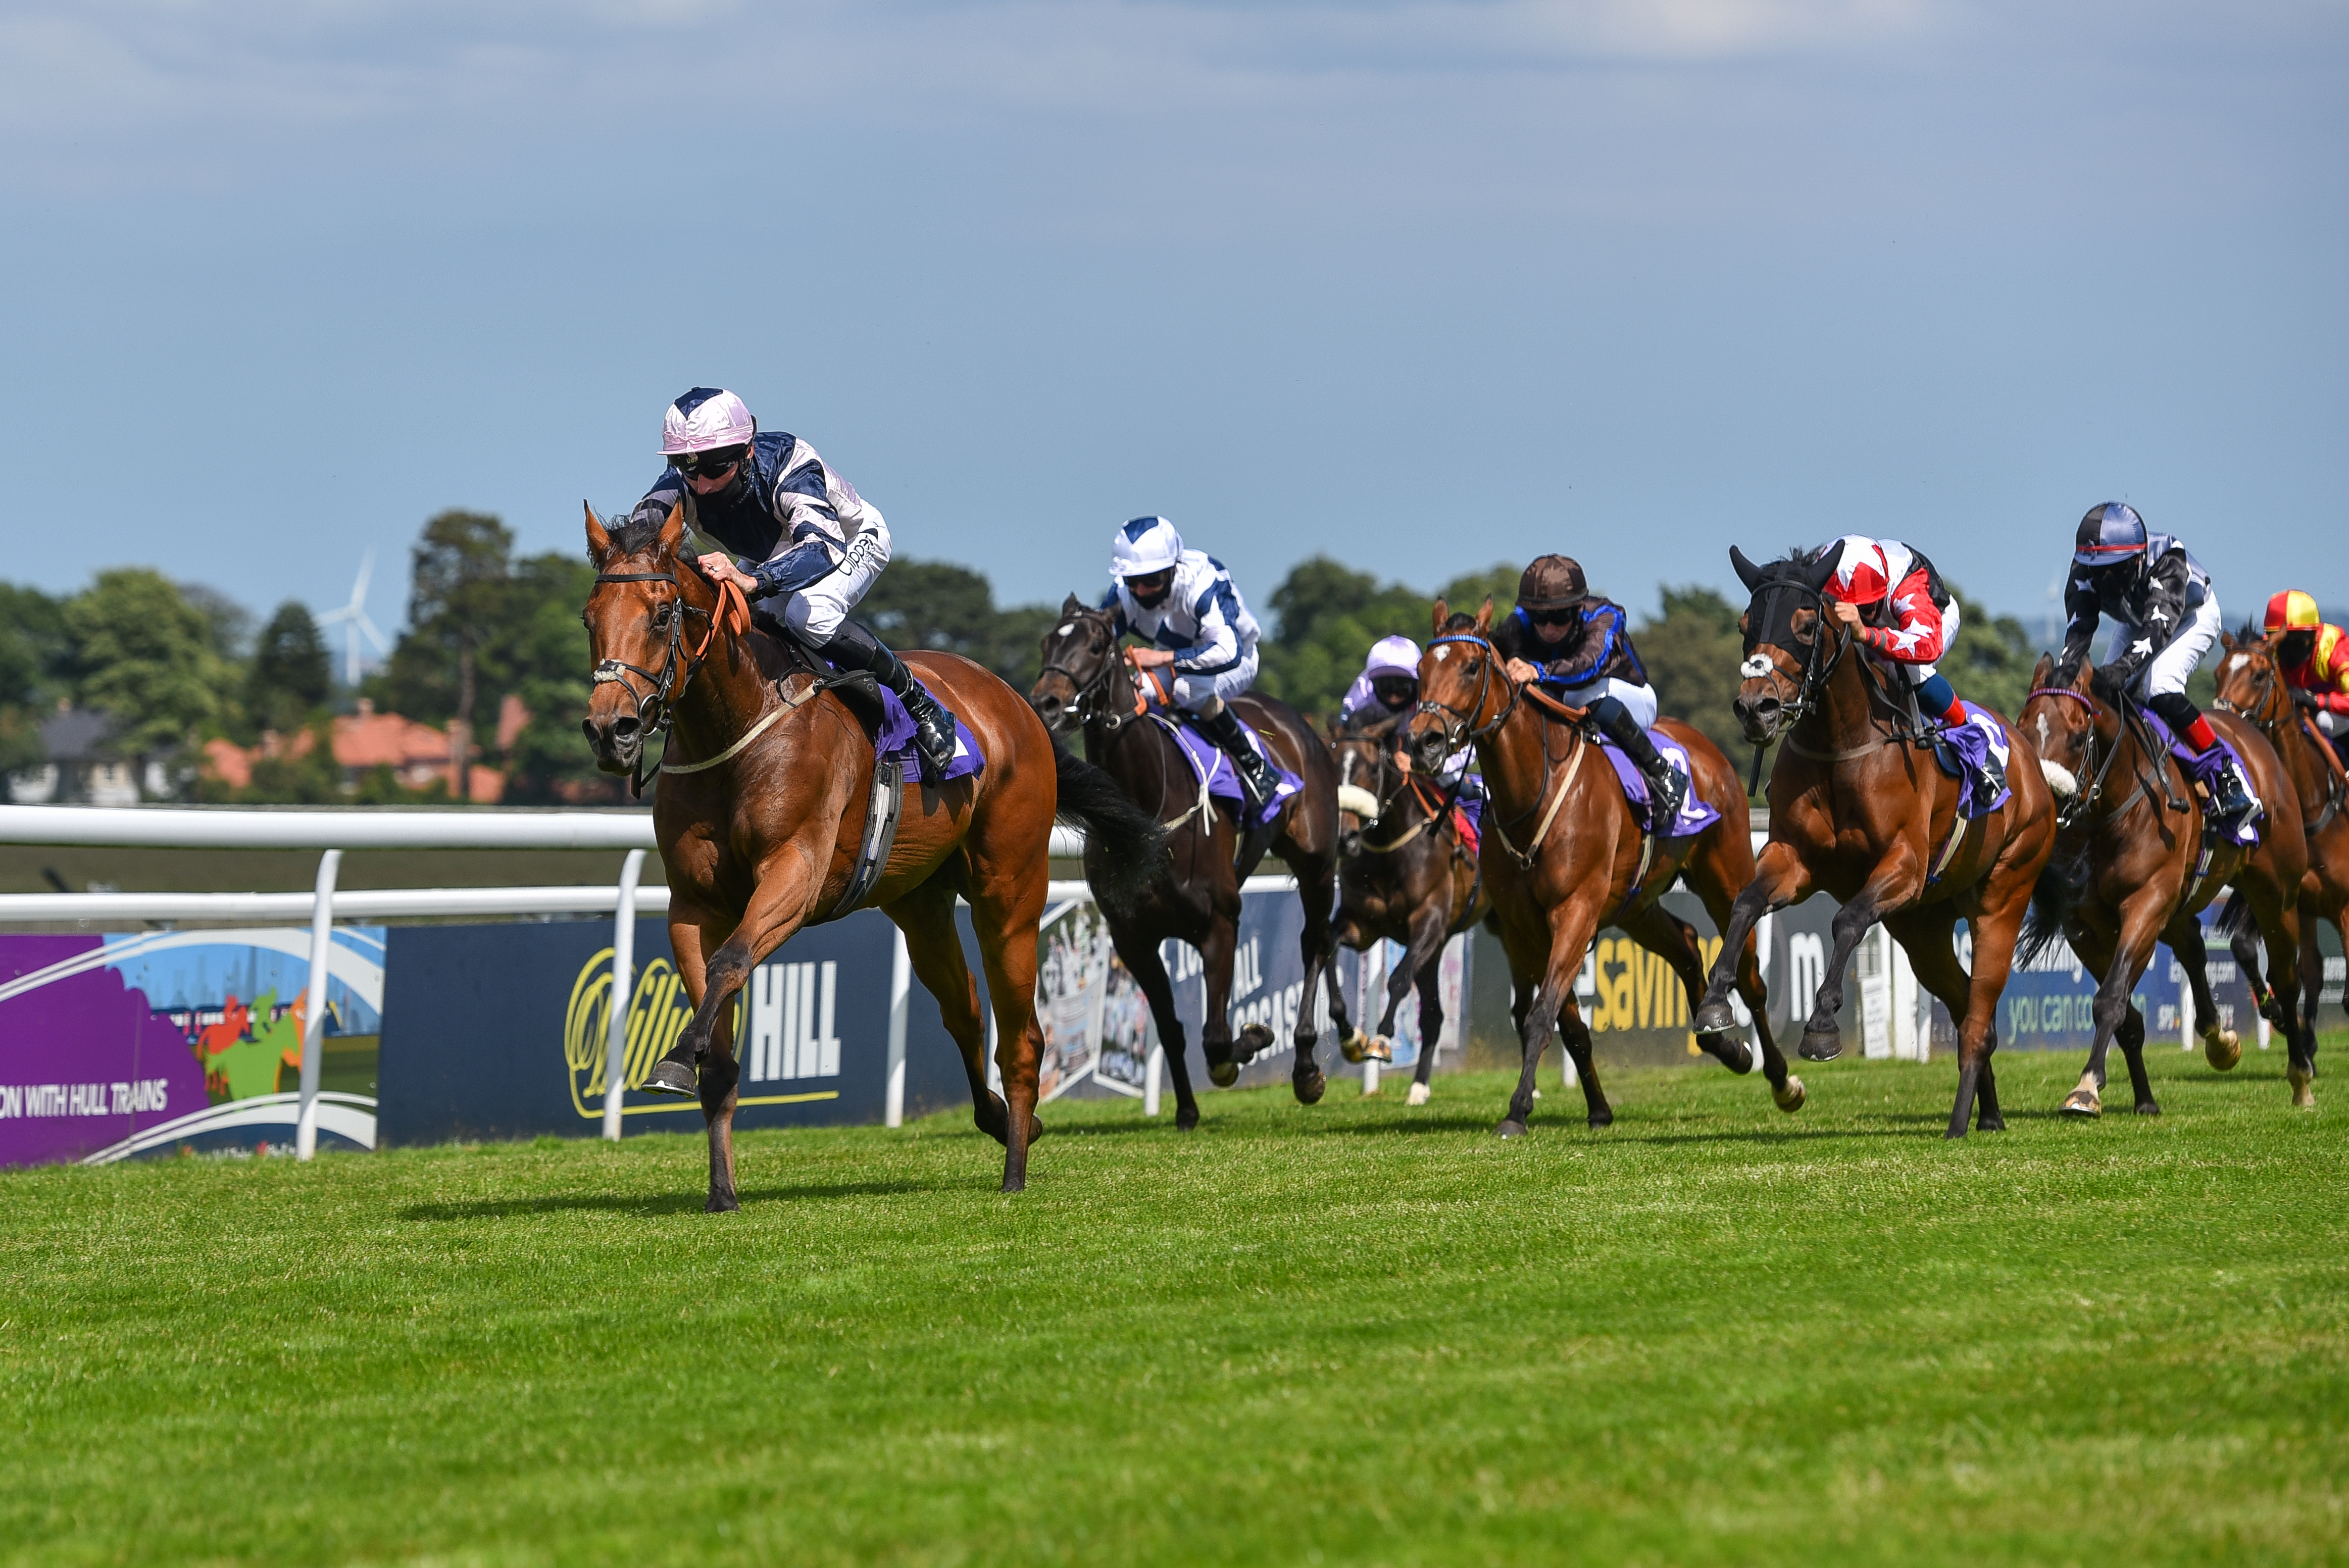 BEVERLEY, ENGLAND - JUNE 23: Jockey Danny Tudhope riding Le Chiffre approach the finish line to win the William Hill Lengthen #yourodds Handicap (Div I) at Beverley Racecourse on June 23, 2020 in Beverley, England. (Photo by Hannah Ali/Pool via Getty Images)